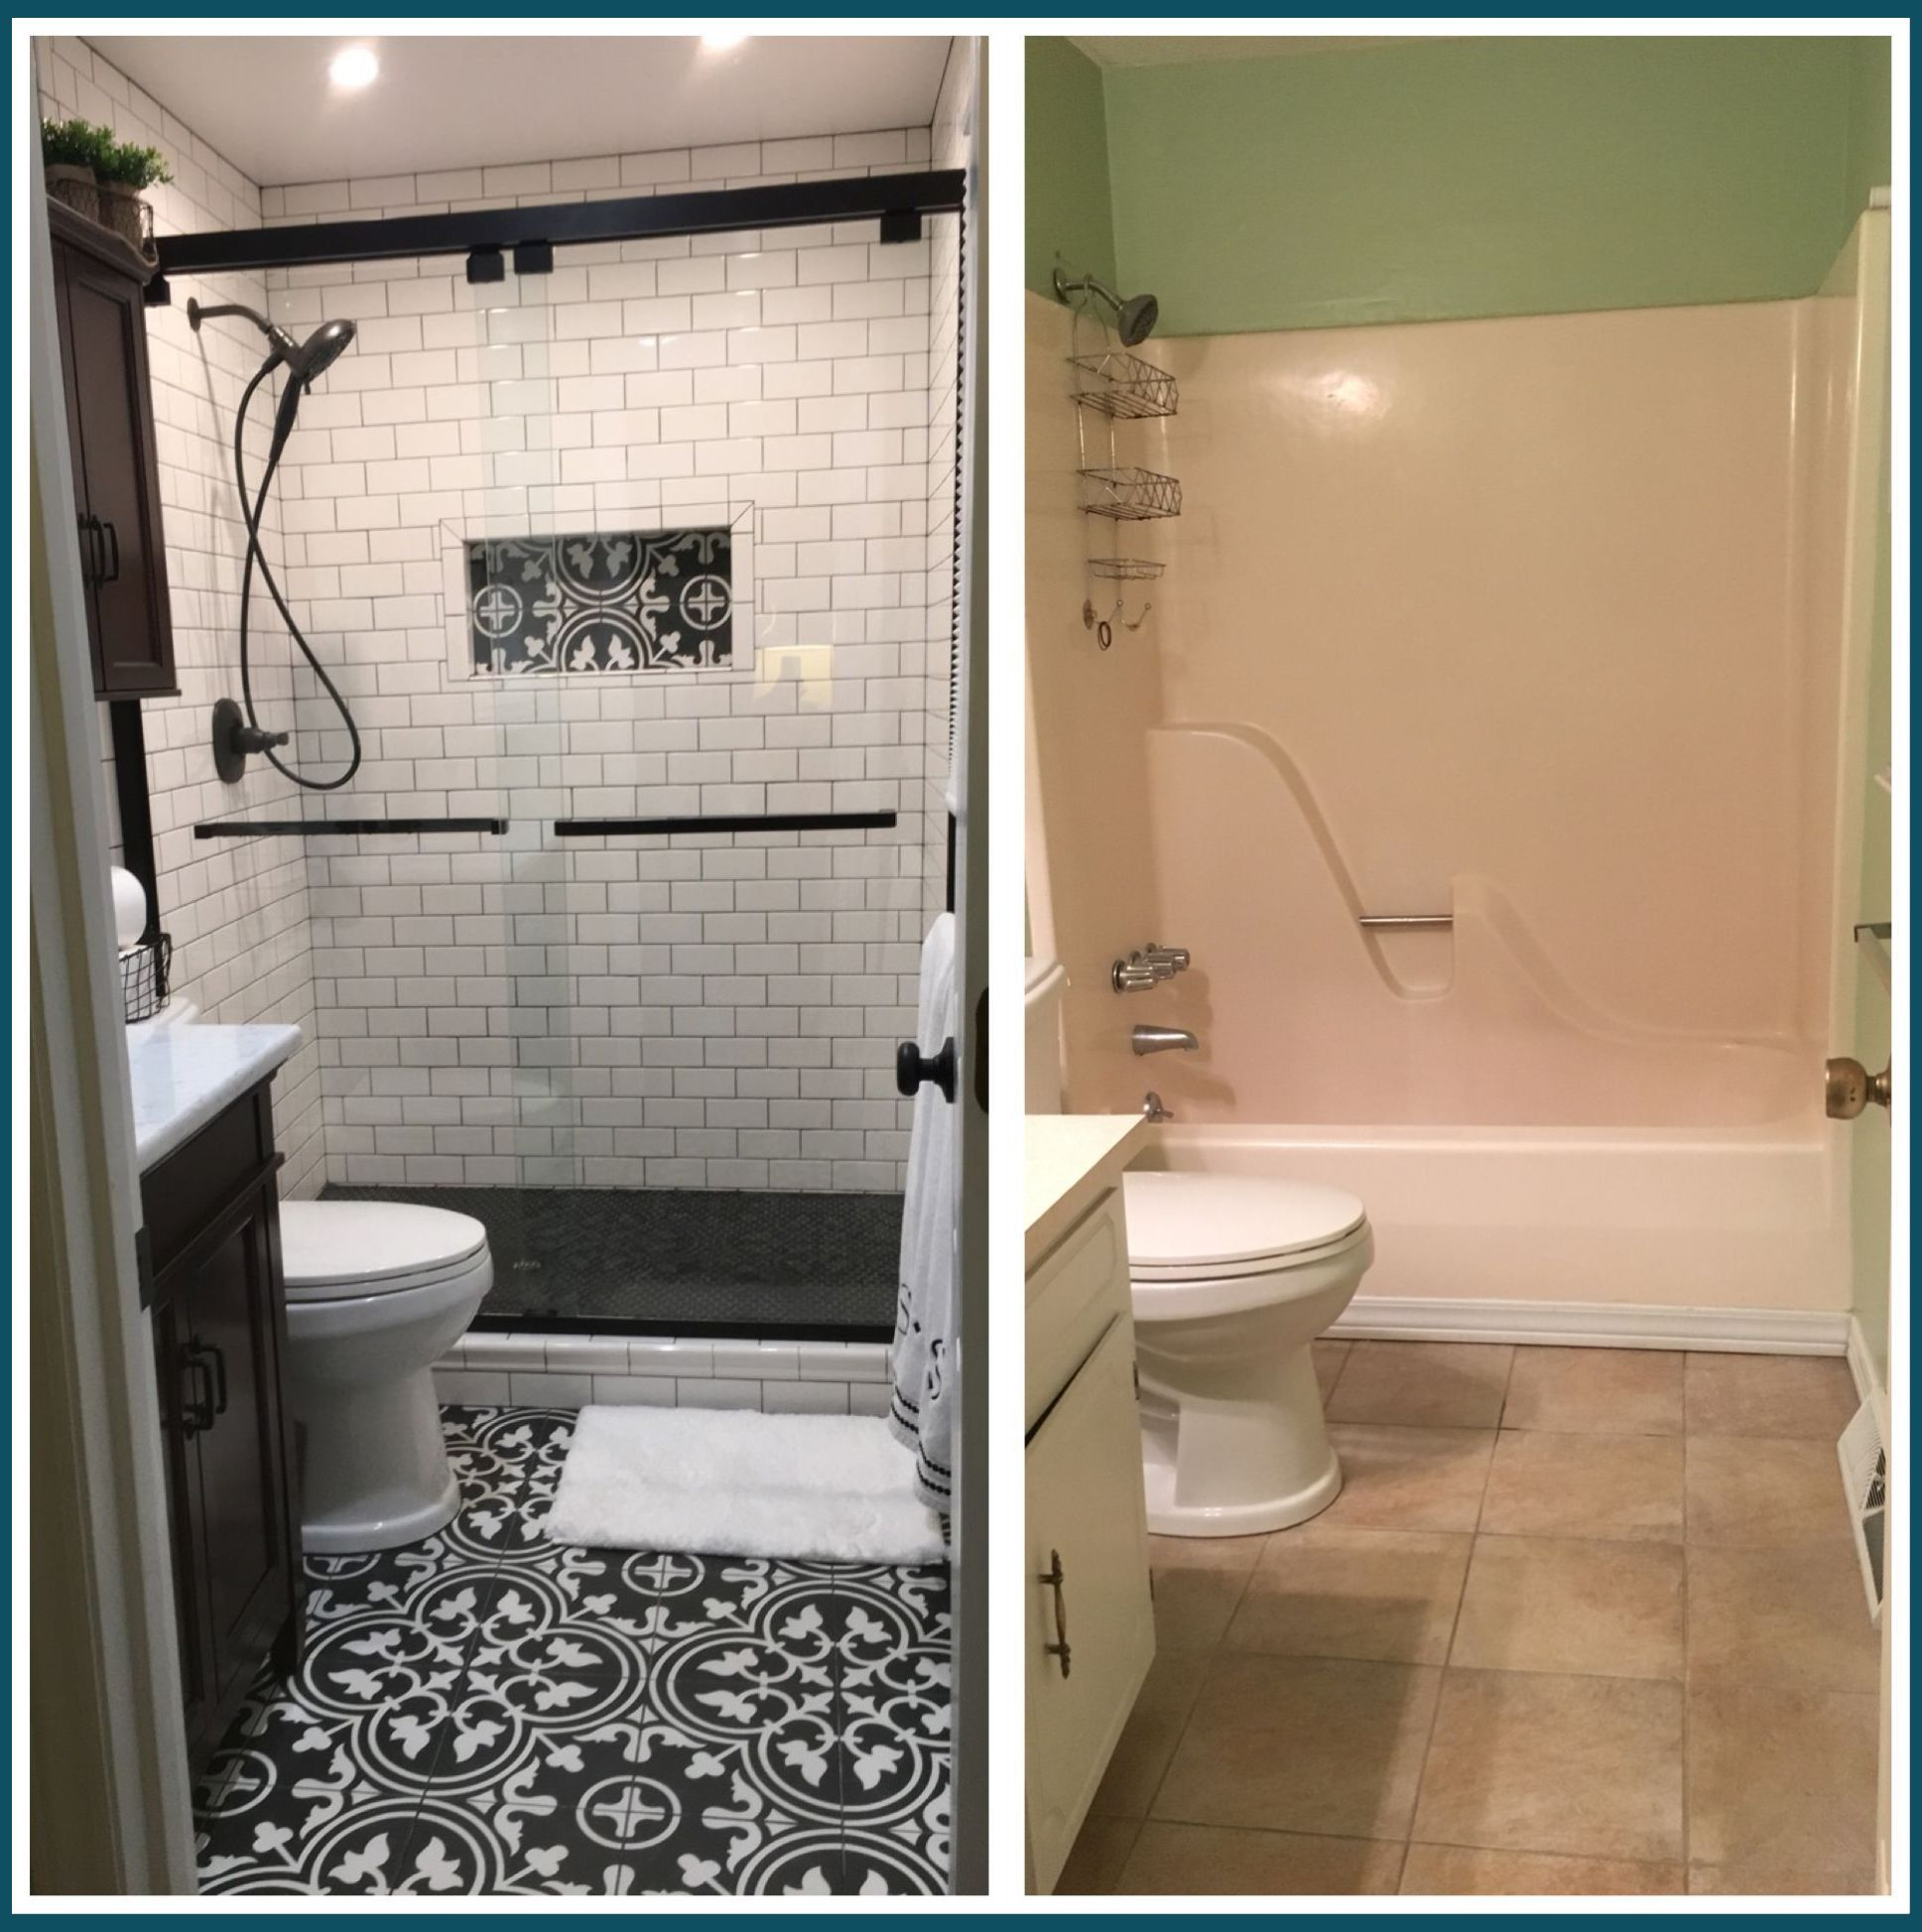 41 Ideas Of Bathroom Remodels For Tiny Rooms You Ll Wish To Replicate Tiny Bathroom Remodel Restroom Remodel Small Bathroom Remodel Bathrooms Remodel